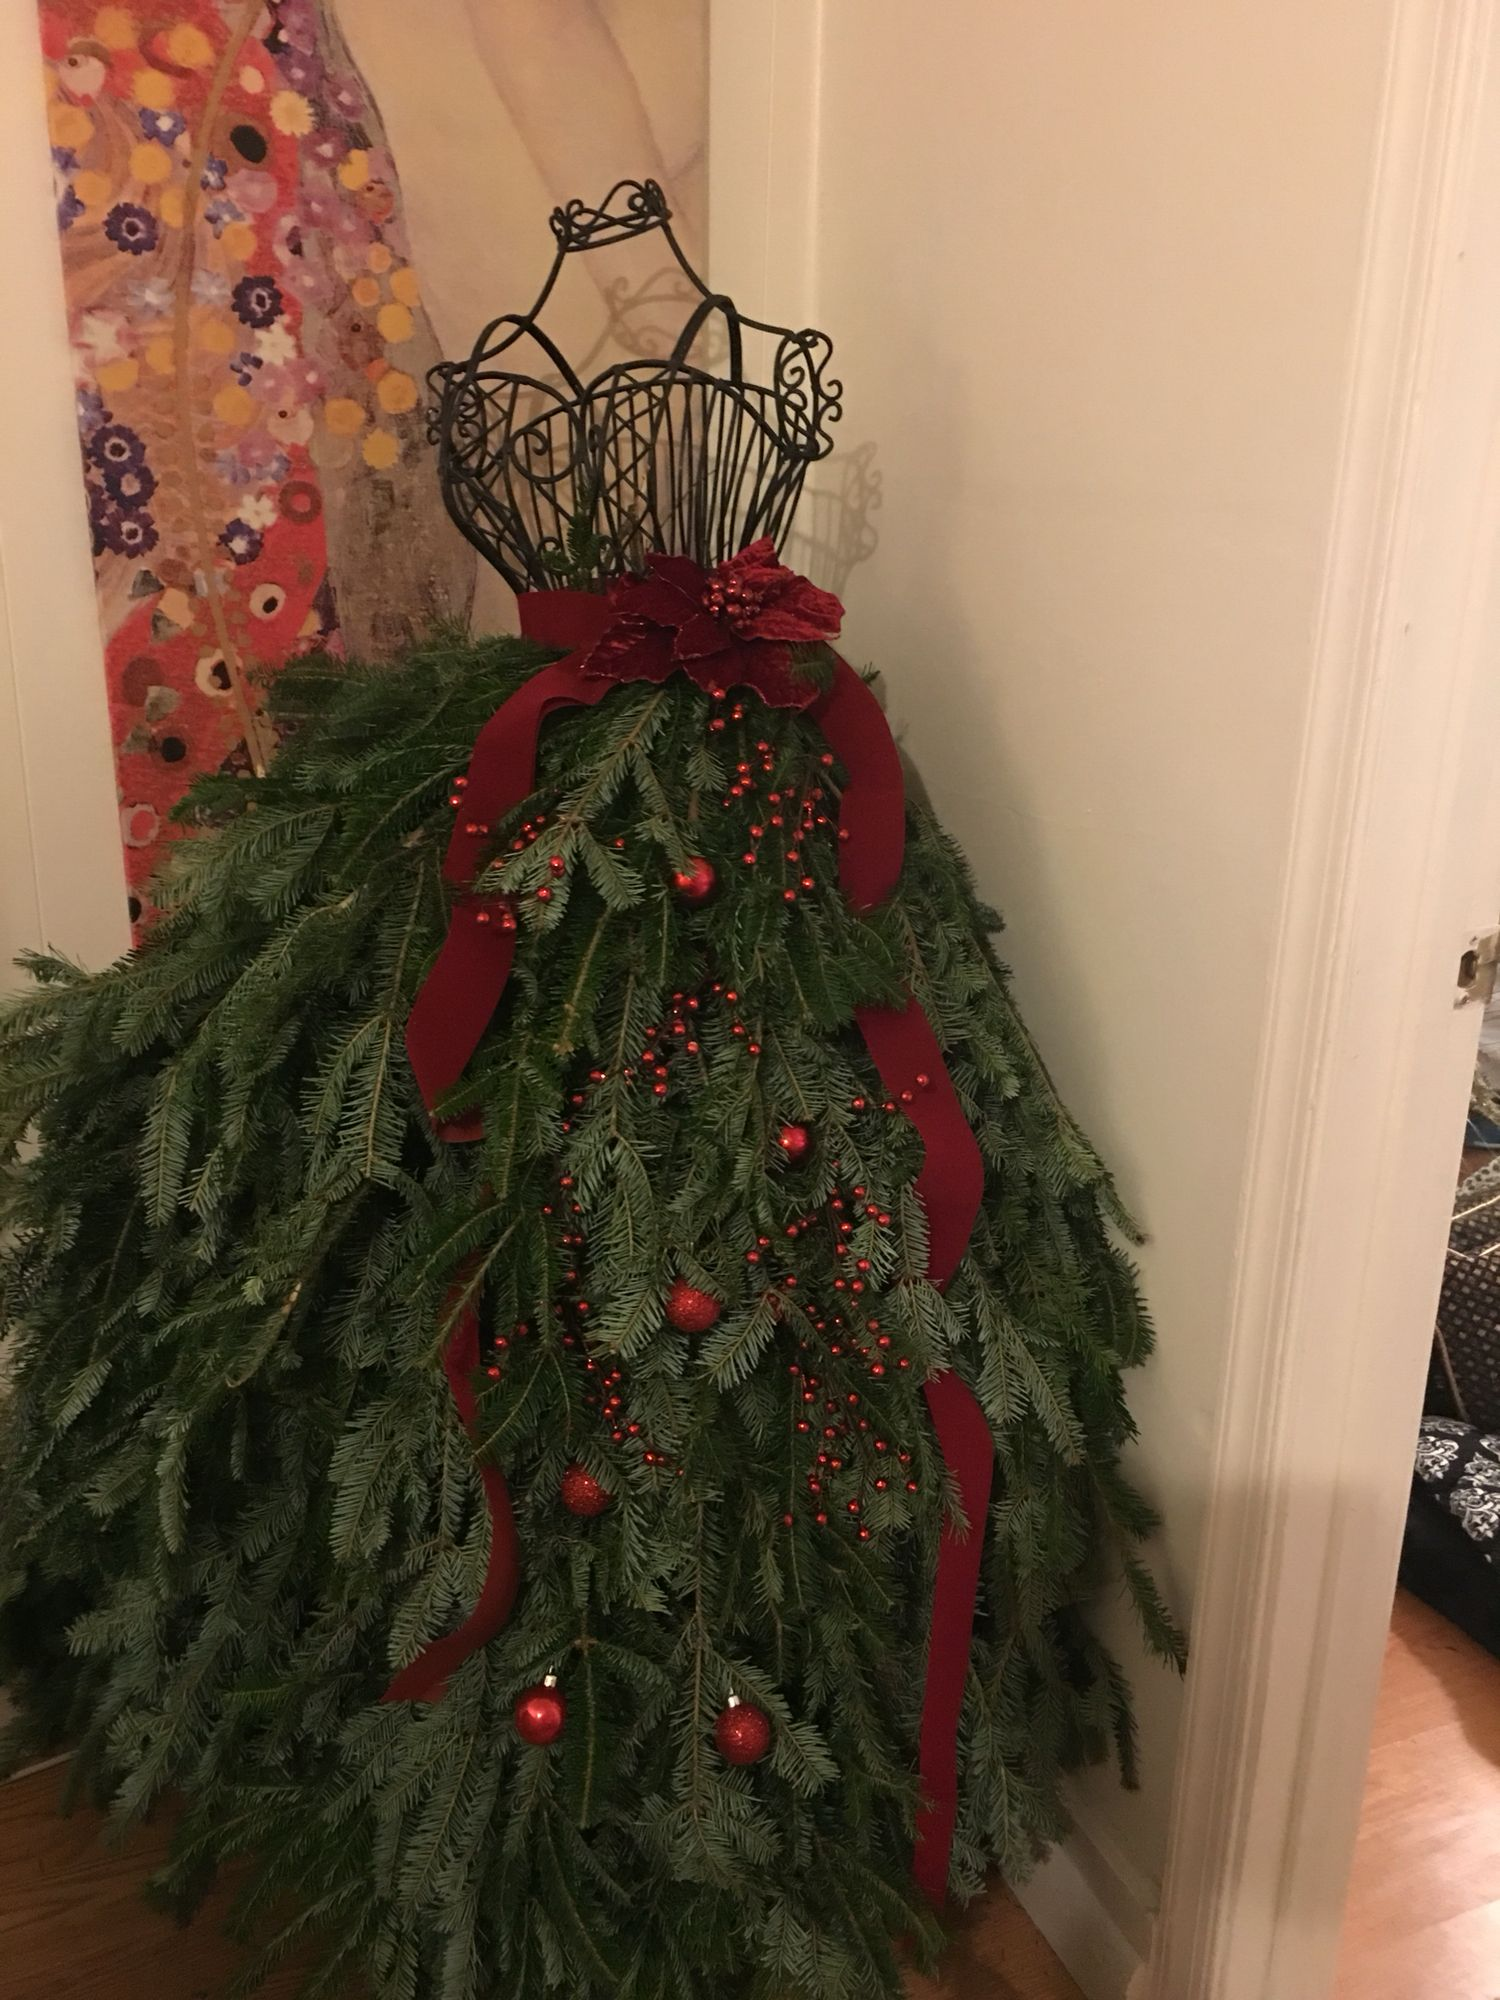 Dress Form Christmas Tree.Dress Form Christmas Tree Dress Form Christmas Tree 2015